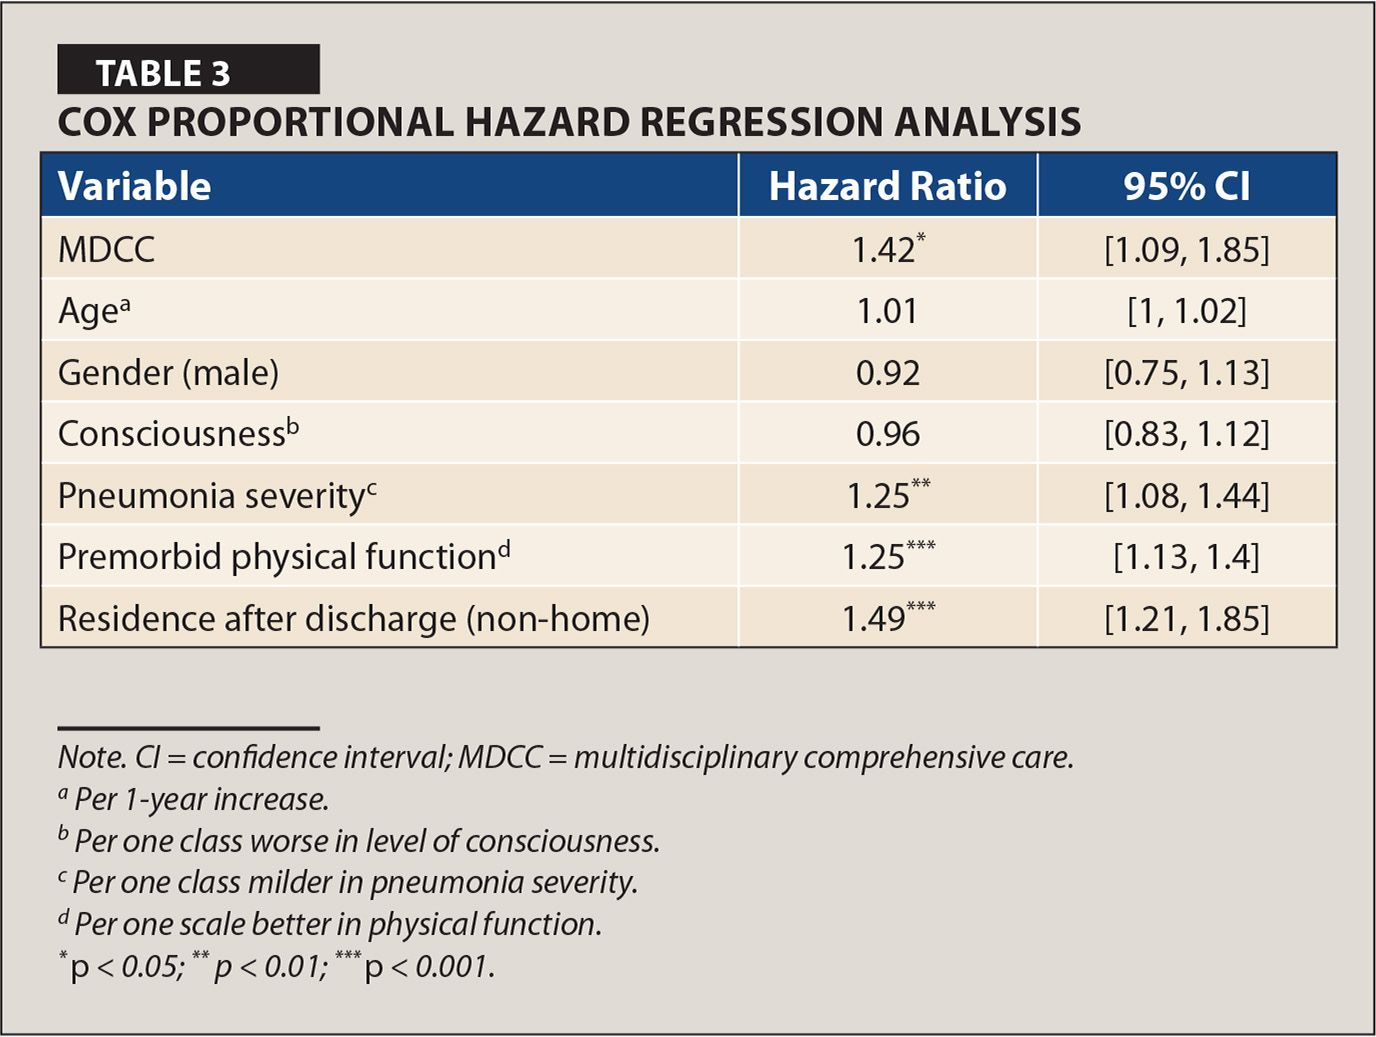 Cox Proportional Hazard Regression Analysis